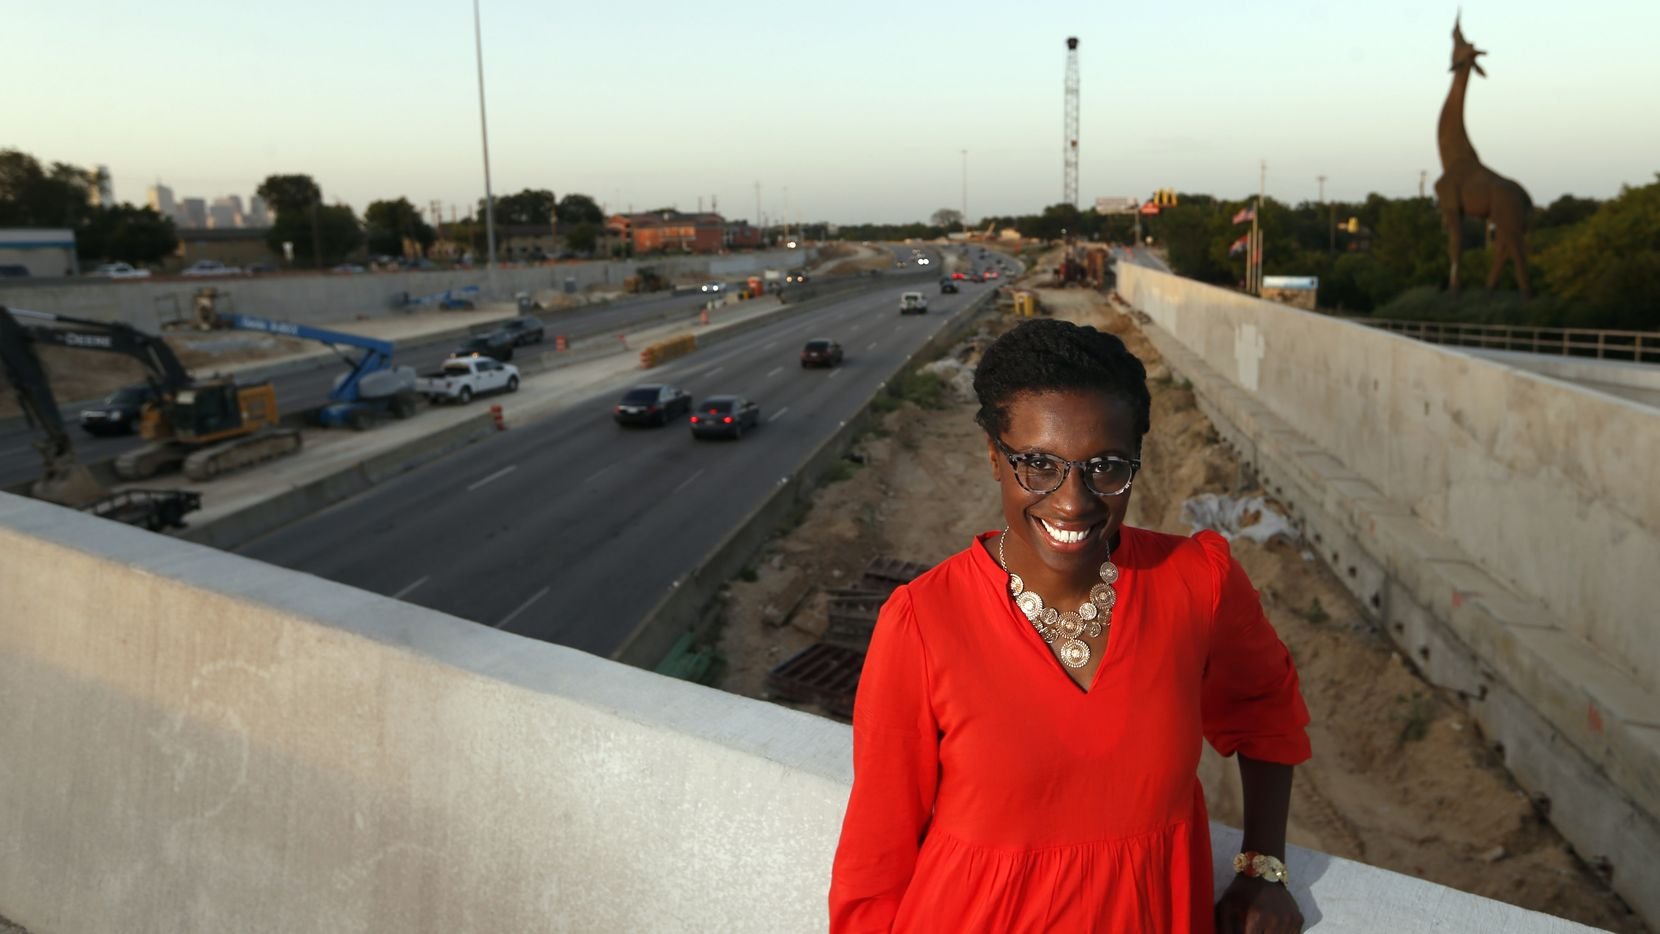 April Allen, the new president of the Southern Gateway Public Green Foundation, stands on the Marsalis Avenue bridge over I-35E with the Dallas Zoo and downtown in the distance. Behind her, the concrete skeleton of the Southern Gateway deck park is beginning to rise.